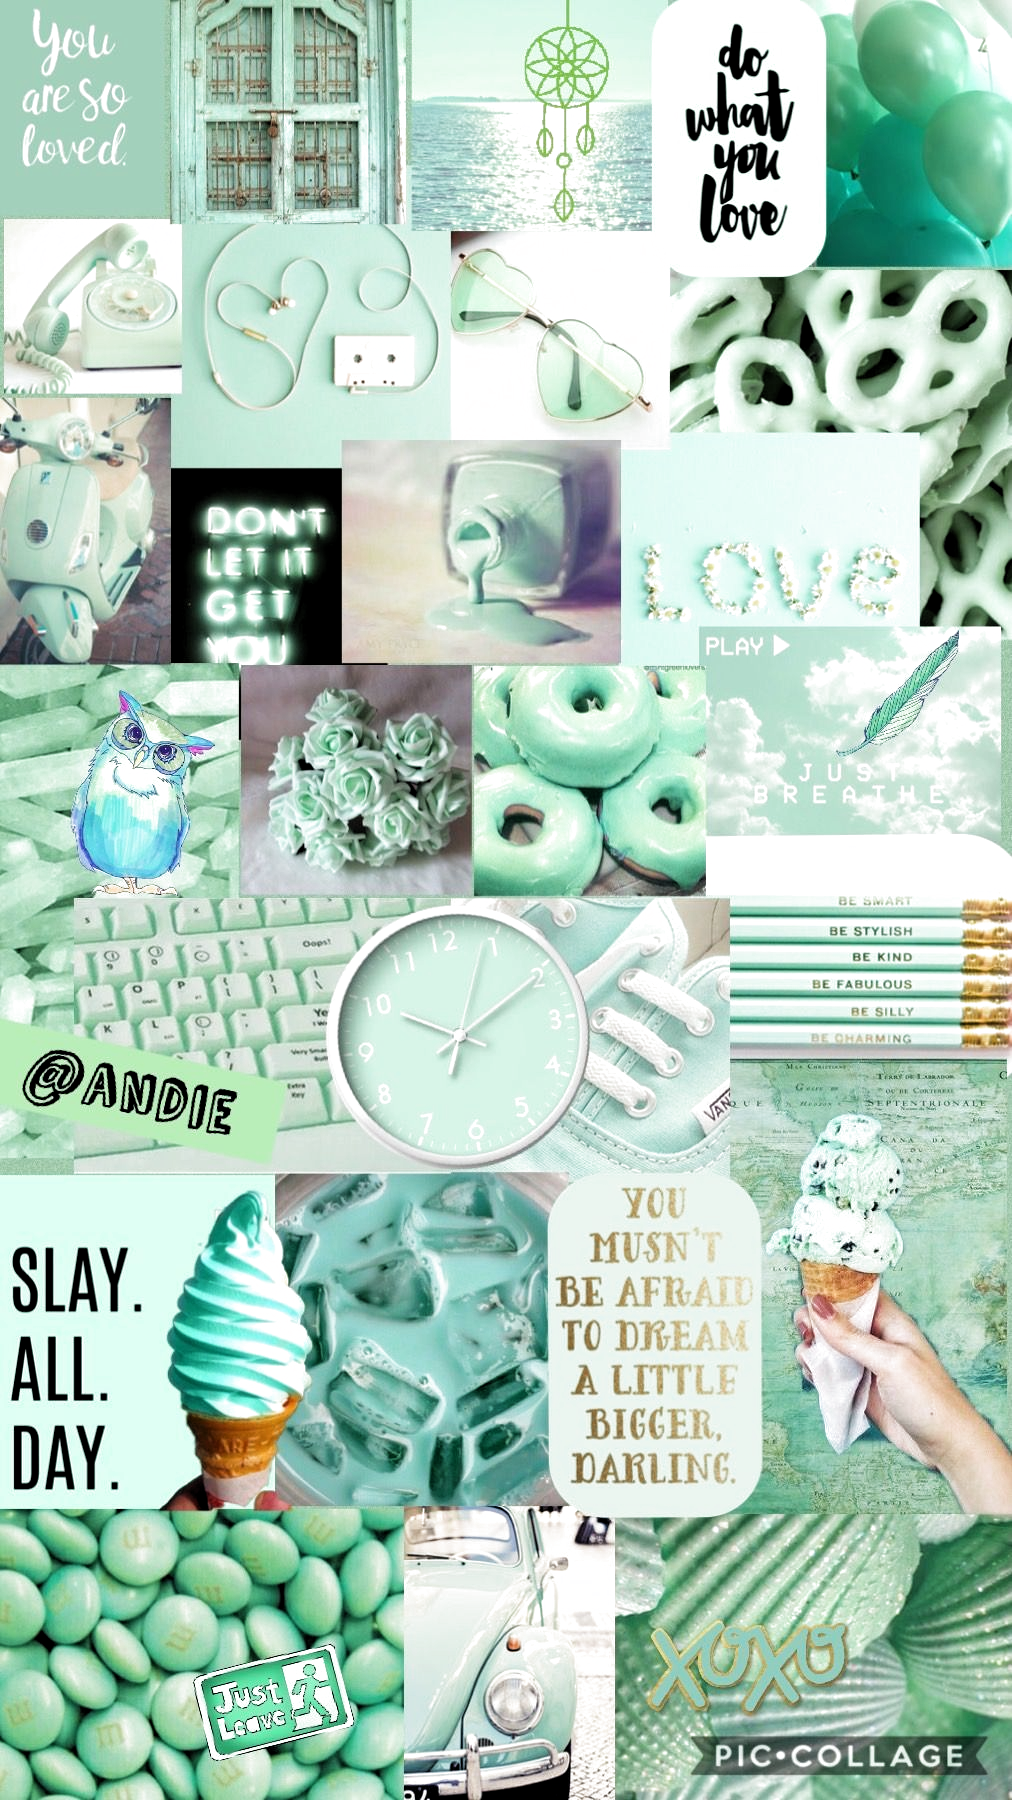 For More Creations Follow Me On Pinterest Hailey H Color Aesthetic Iphone Wallpaper Tumblr Aesthetic Iphone Wallpaper Vintage Aesthetic Iphone Wallpaper